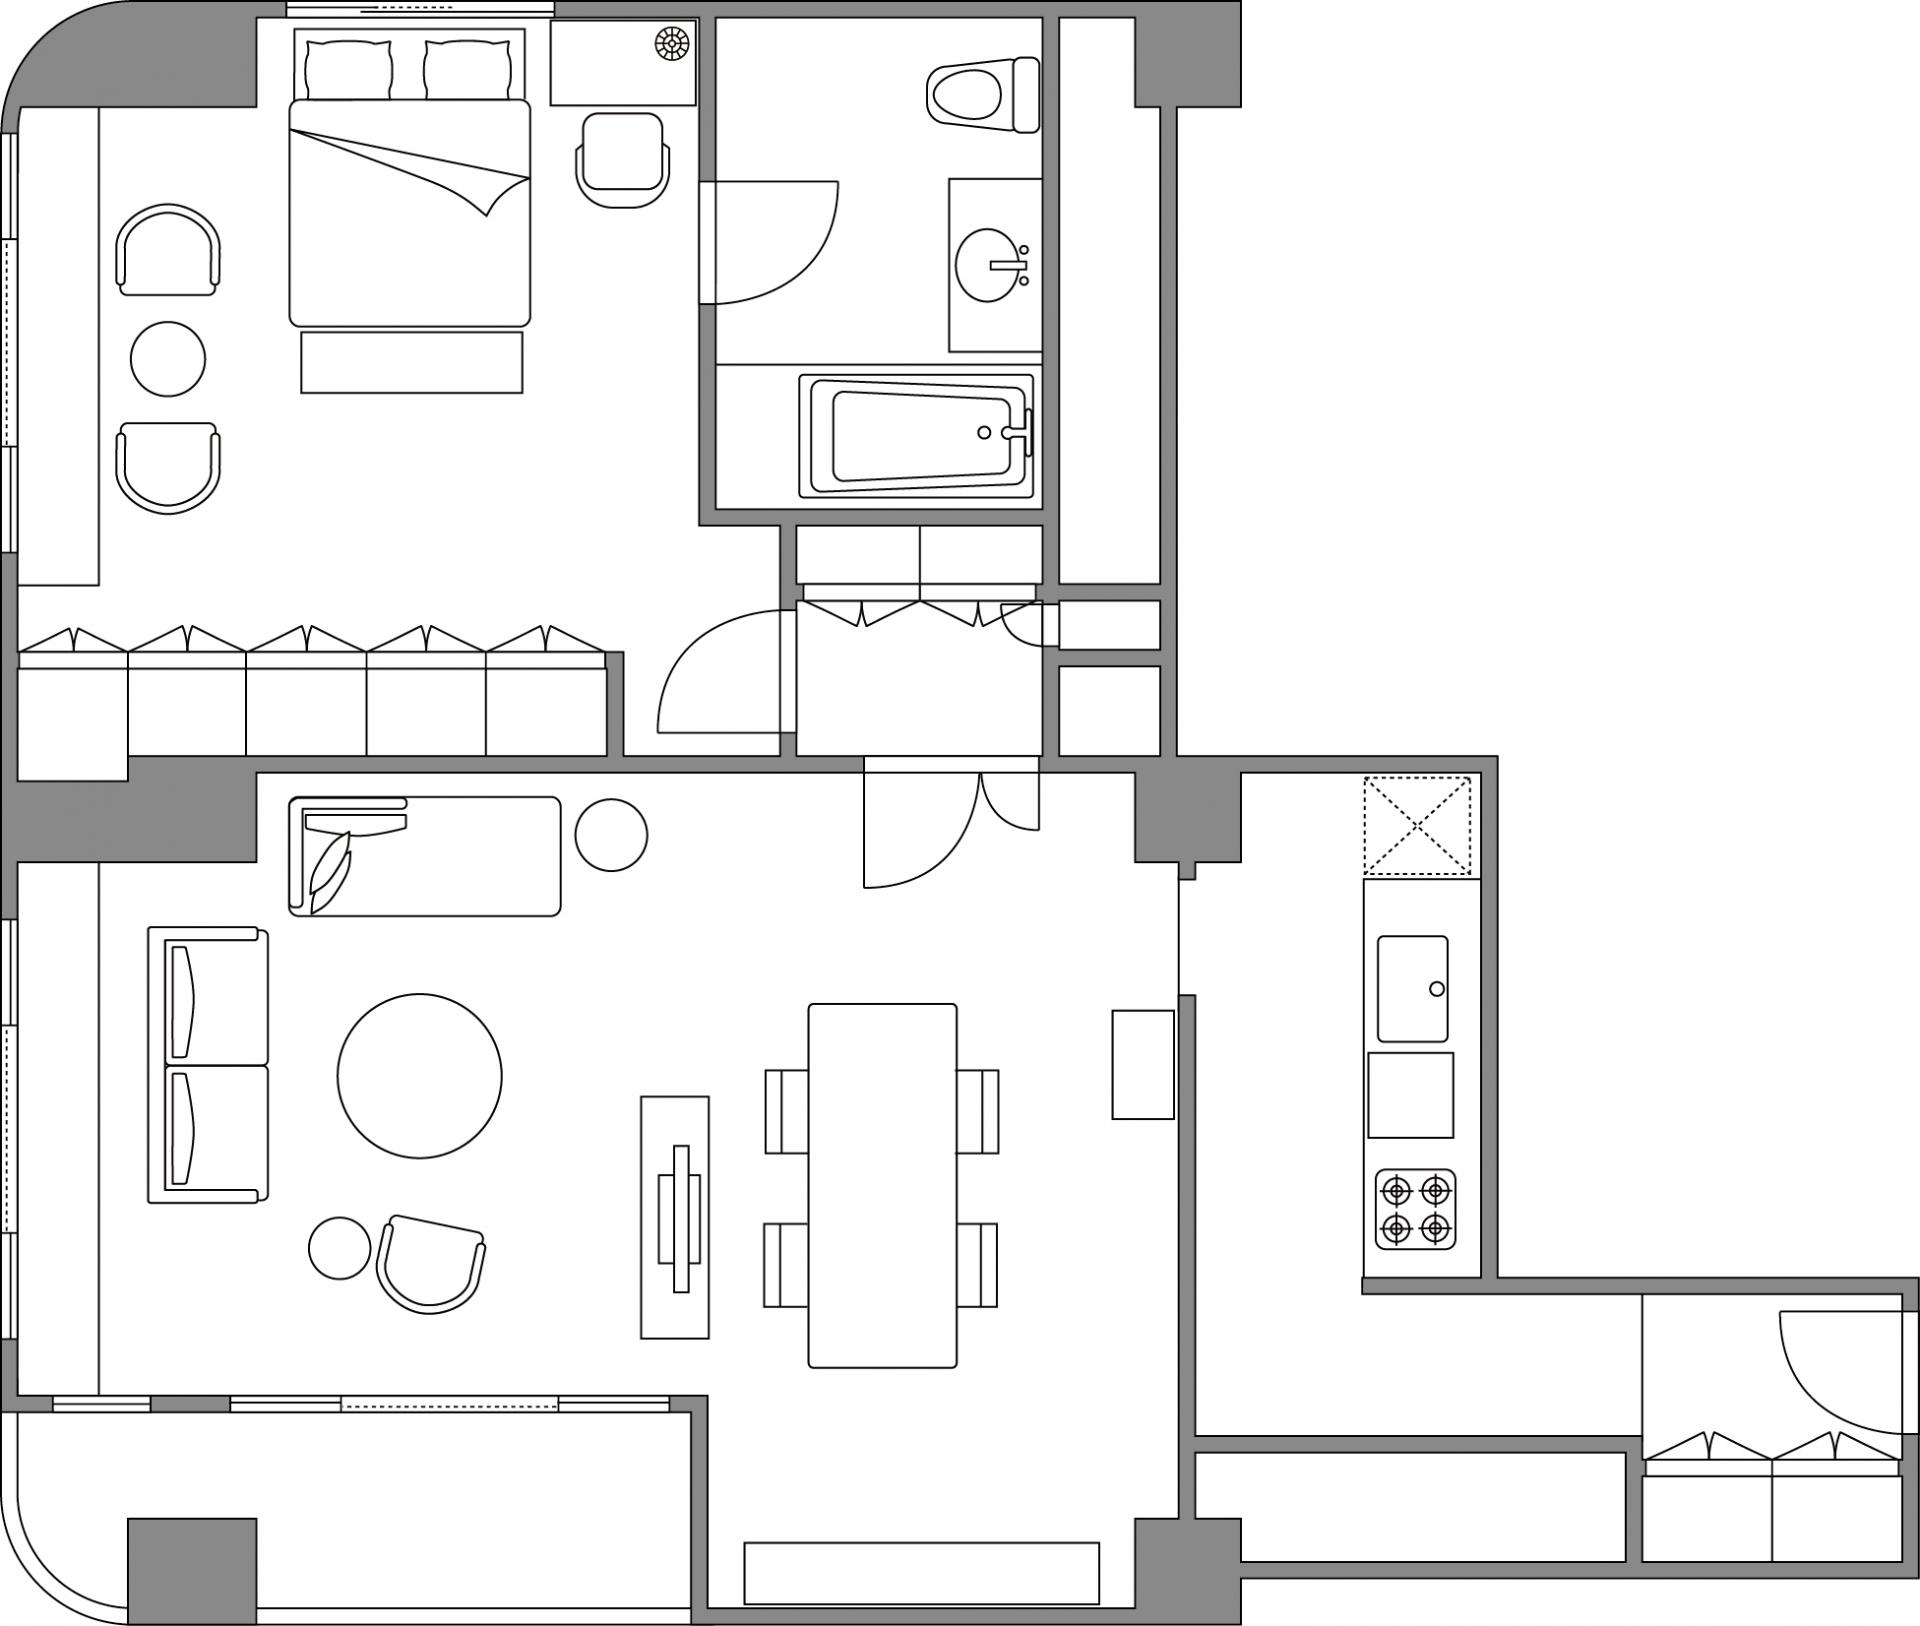 1 bedroom premier apartment floor plan at Somerset Shinagawa Apartments